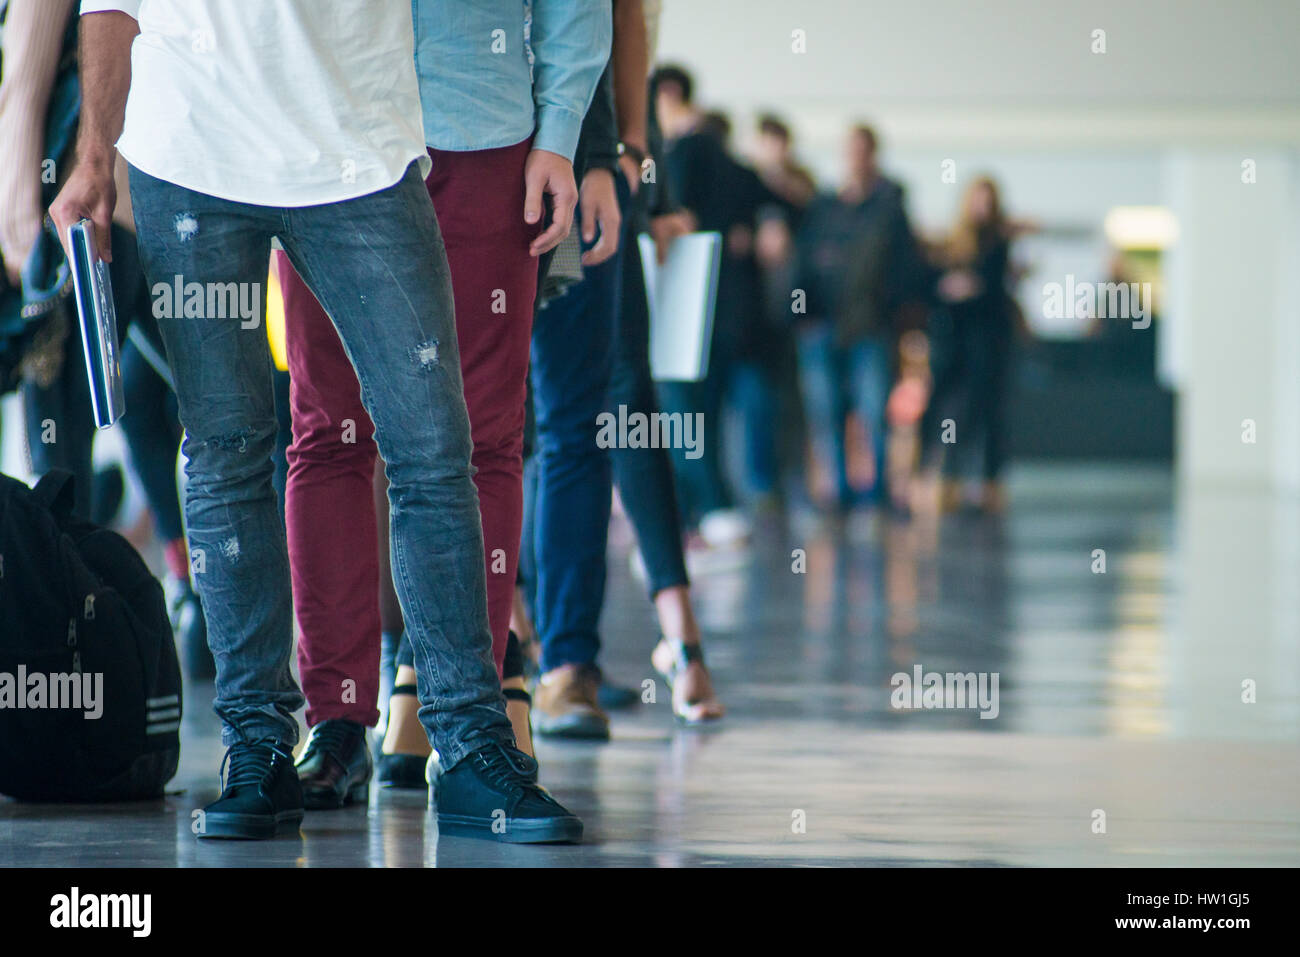 Shoes of people doing a line in a casting for a catwalk - Barcelona - Stock Image